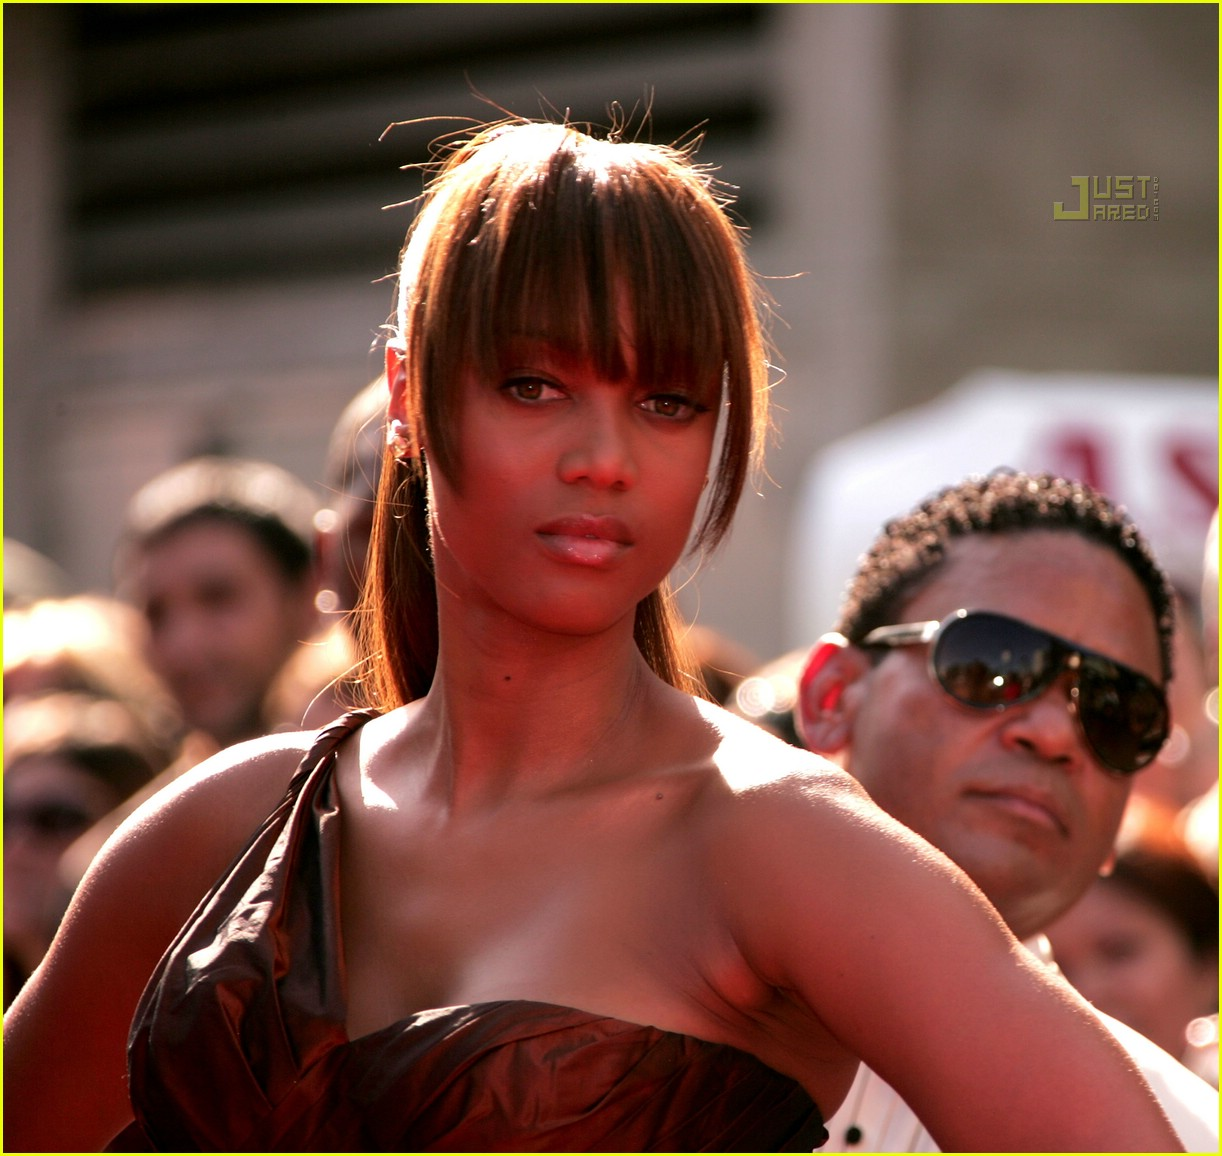 Tyra Banks Awards: Tyra Banks @ Daytime Emmy Awards 2007: Photo 442841